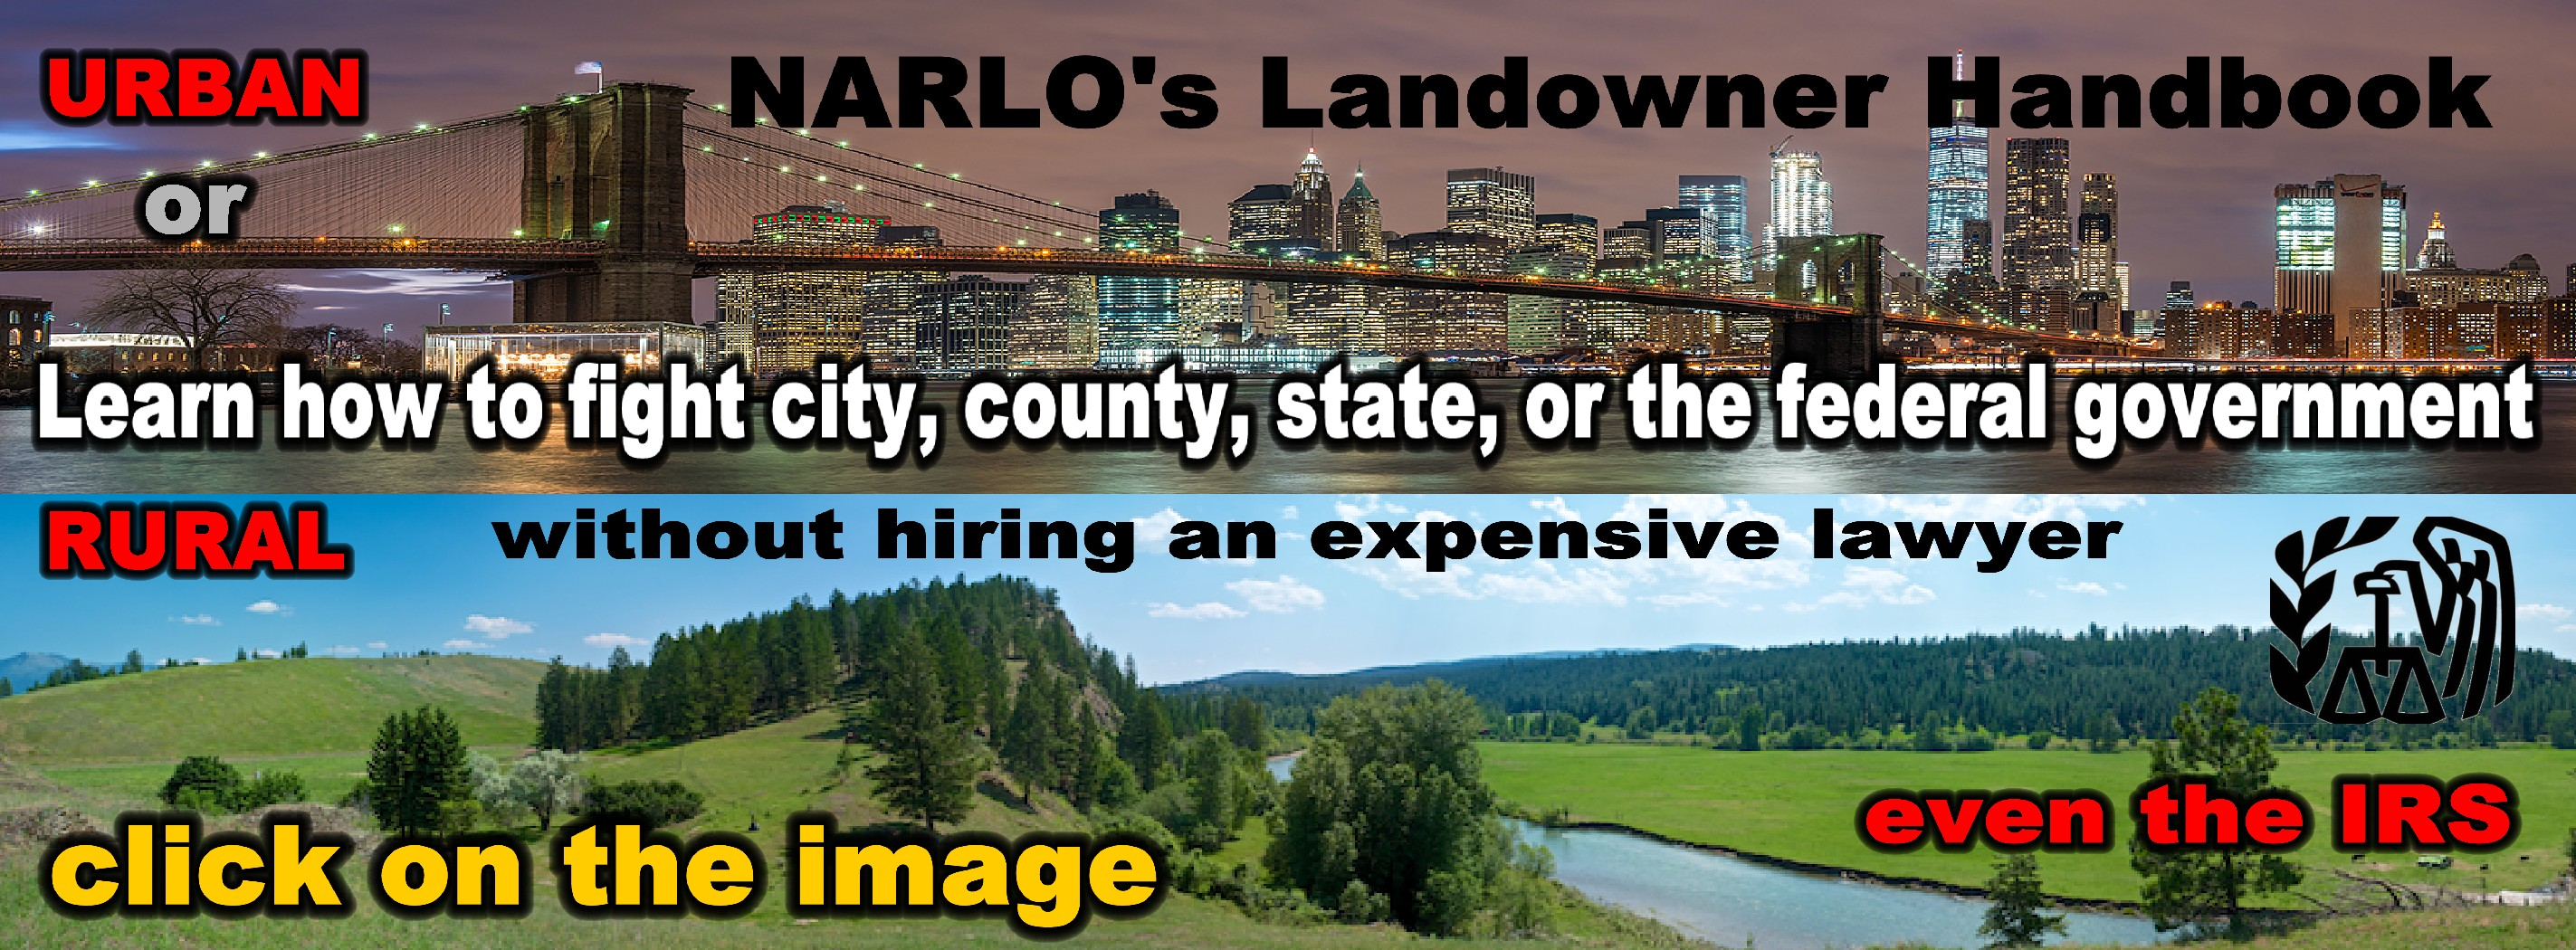 The National Association of Rural Landowners - NARLO